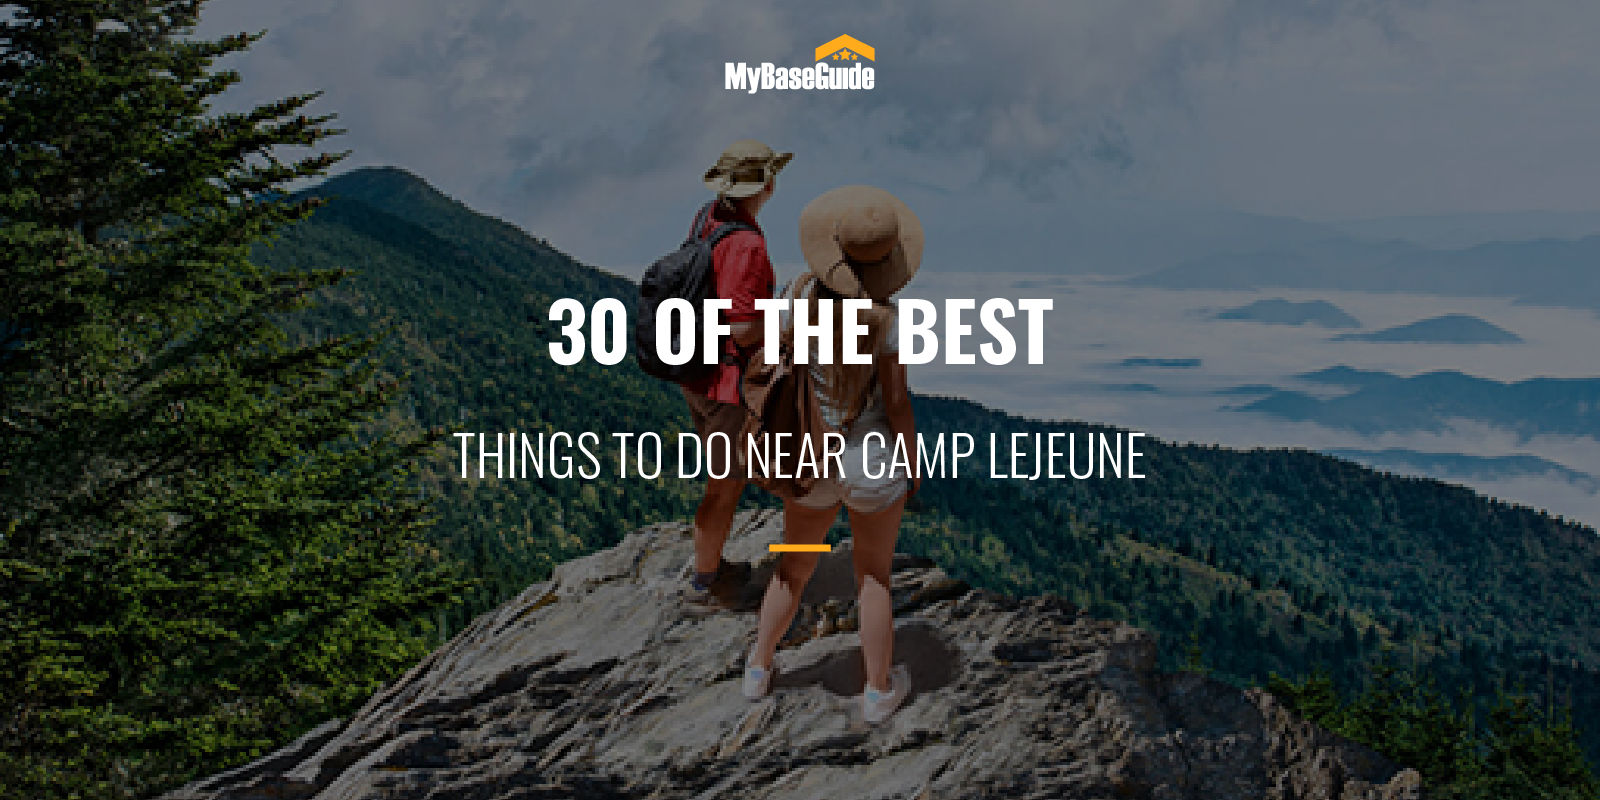 Best Things to Do Near Camp Lejeune